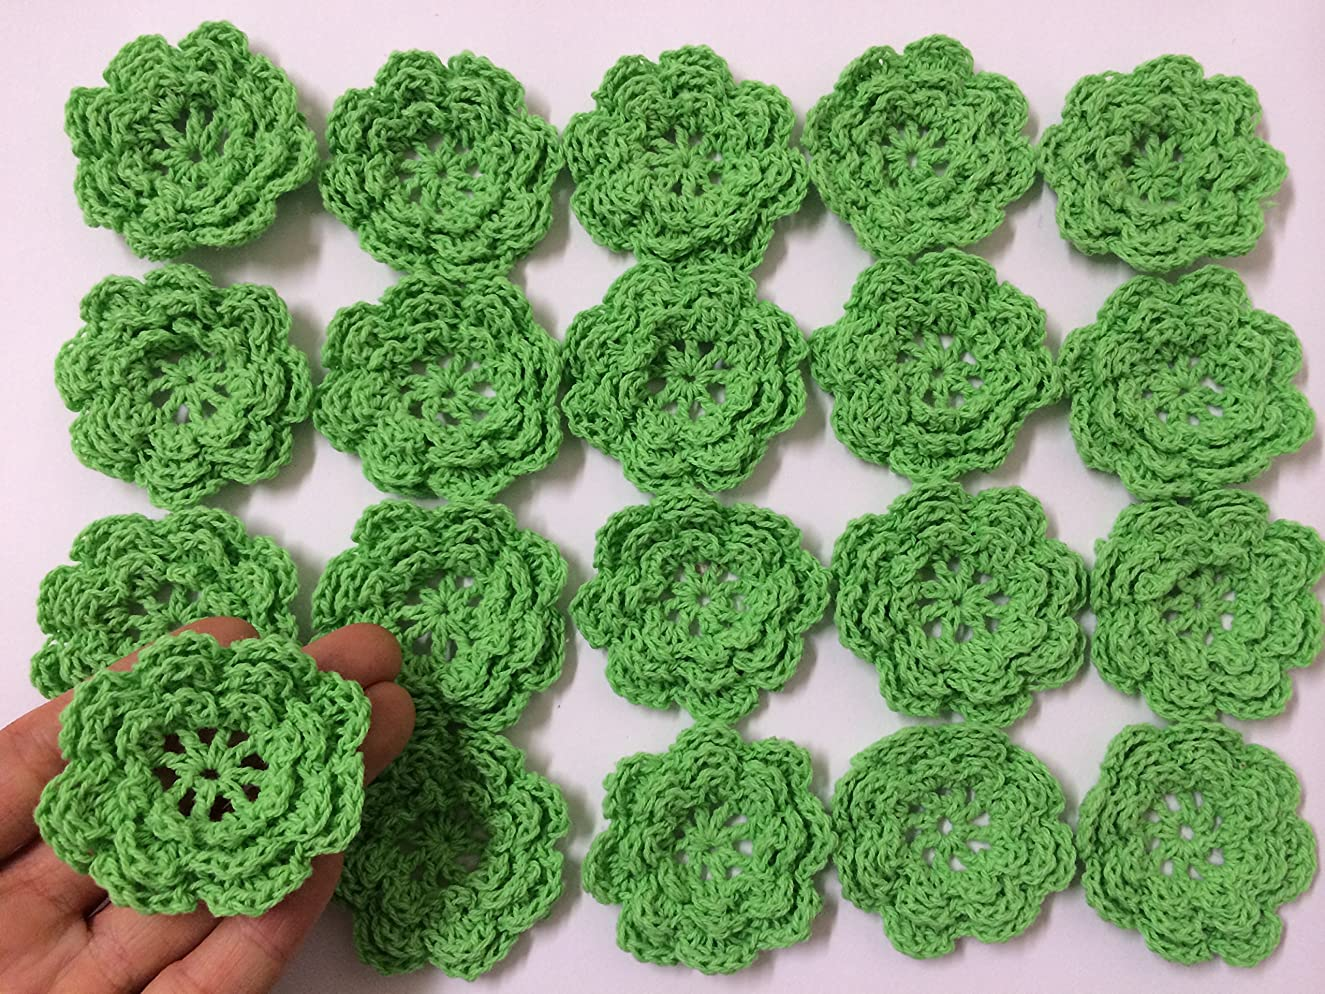 PEPPERLONELY Brand 20PC Green Eight Petals 2 Inch Crocheted Flower Appliques Embellishments